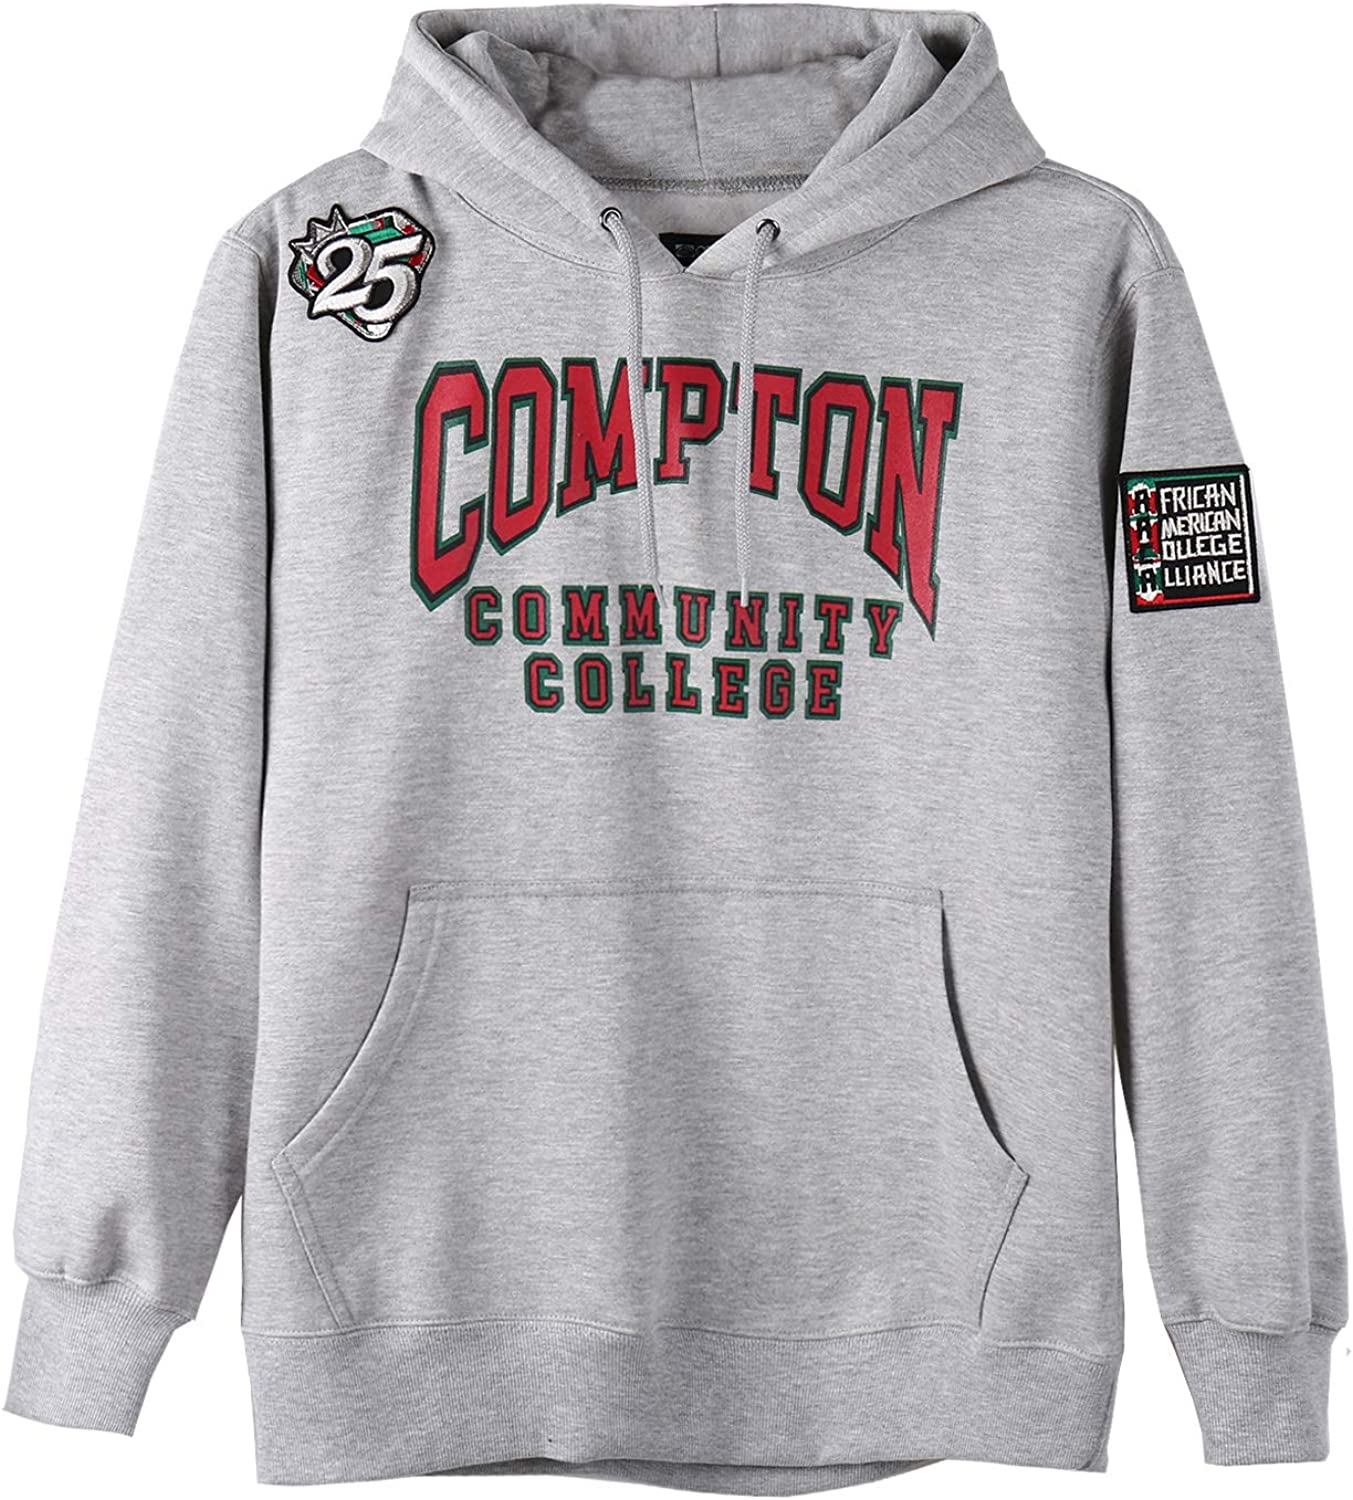 AACA Mens Cotton Pullover Fleece Hooded Sweatshirt Compton Community College